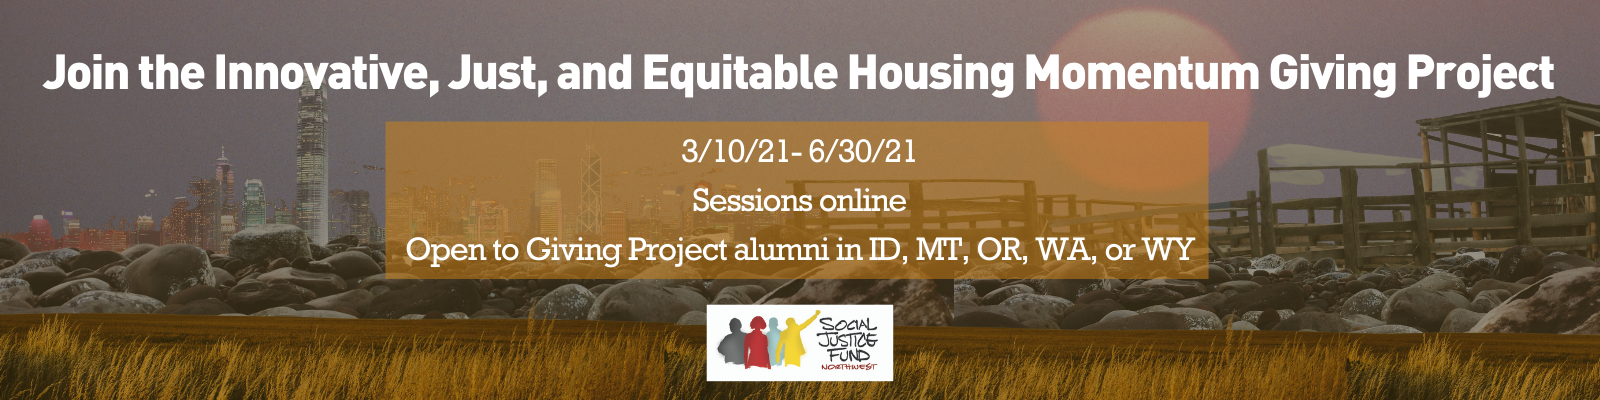 Rectangular banner with collage background featuring different landscapes including a field and rural farm structure a city skyline a forest and a beach. There is a brown overlay on top. White text reads The Innovative Just and Equitable Housing Momentum Giving Project.